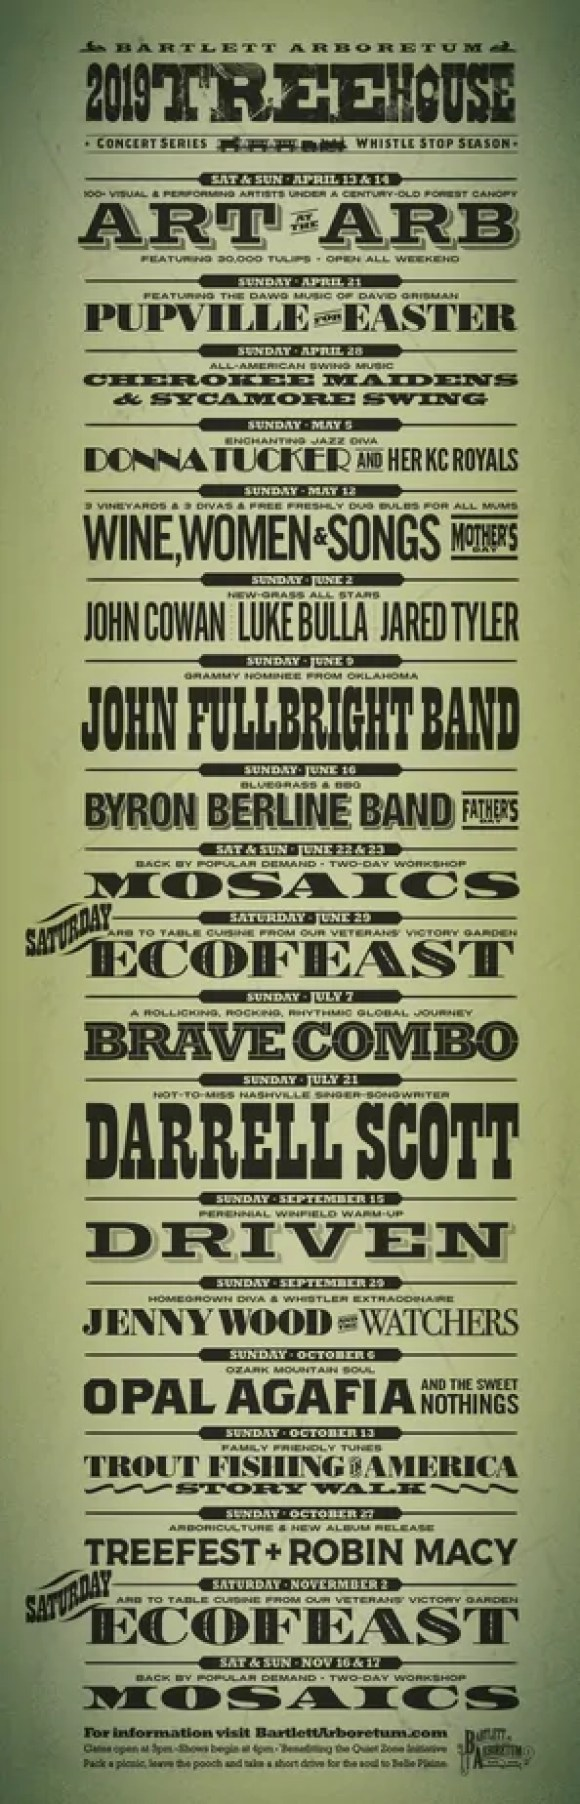 Flyer showing 2019 Treehouse Concerts at Bartlett Arboretum in Belle Plaine, KS